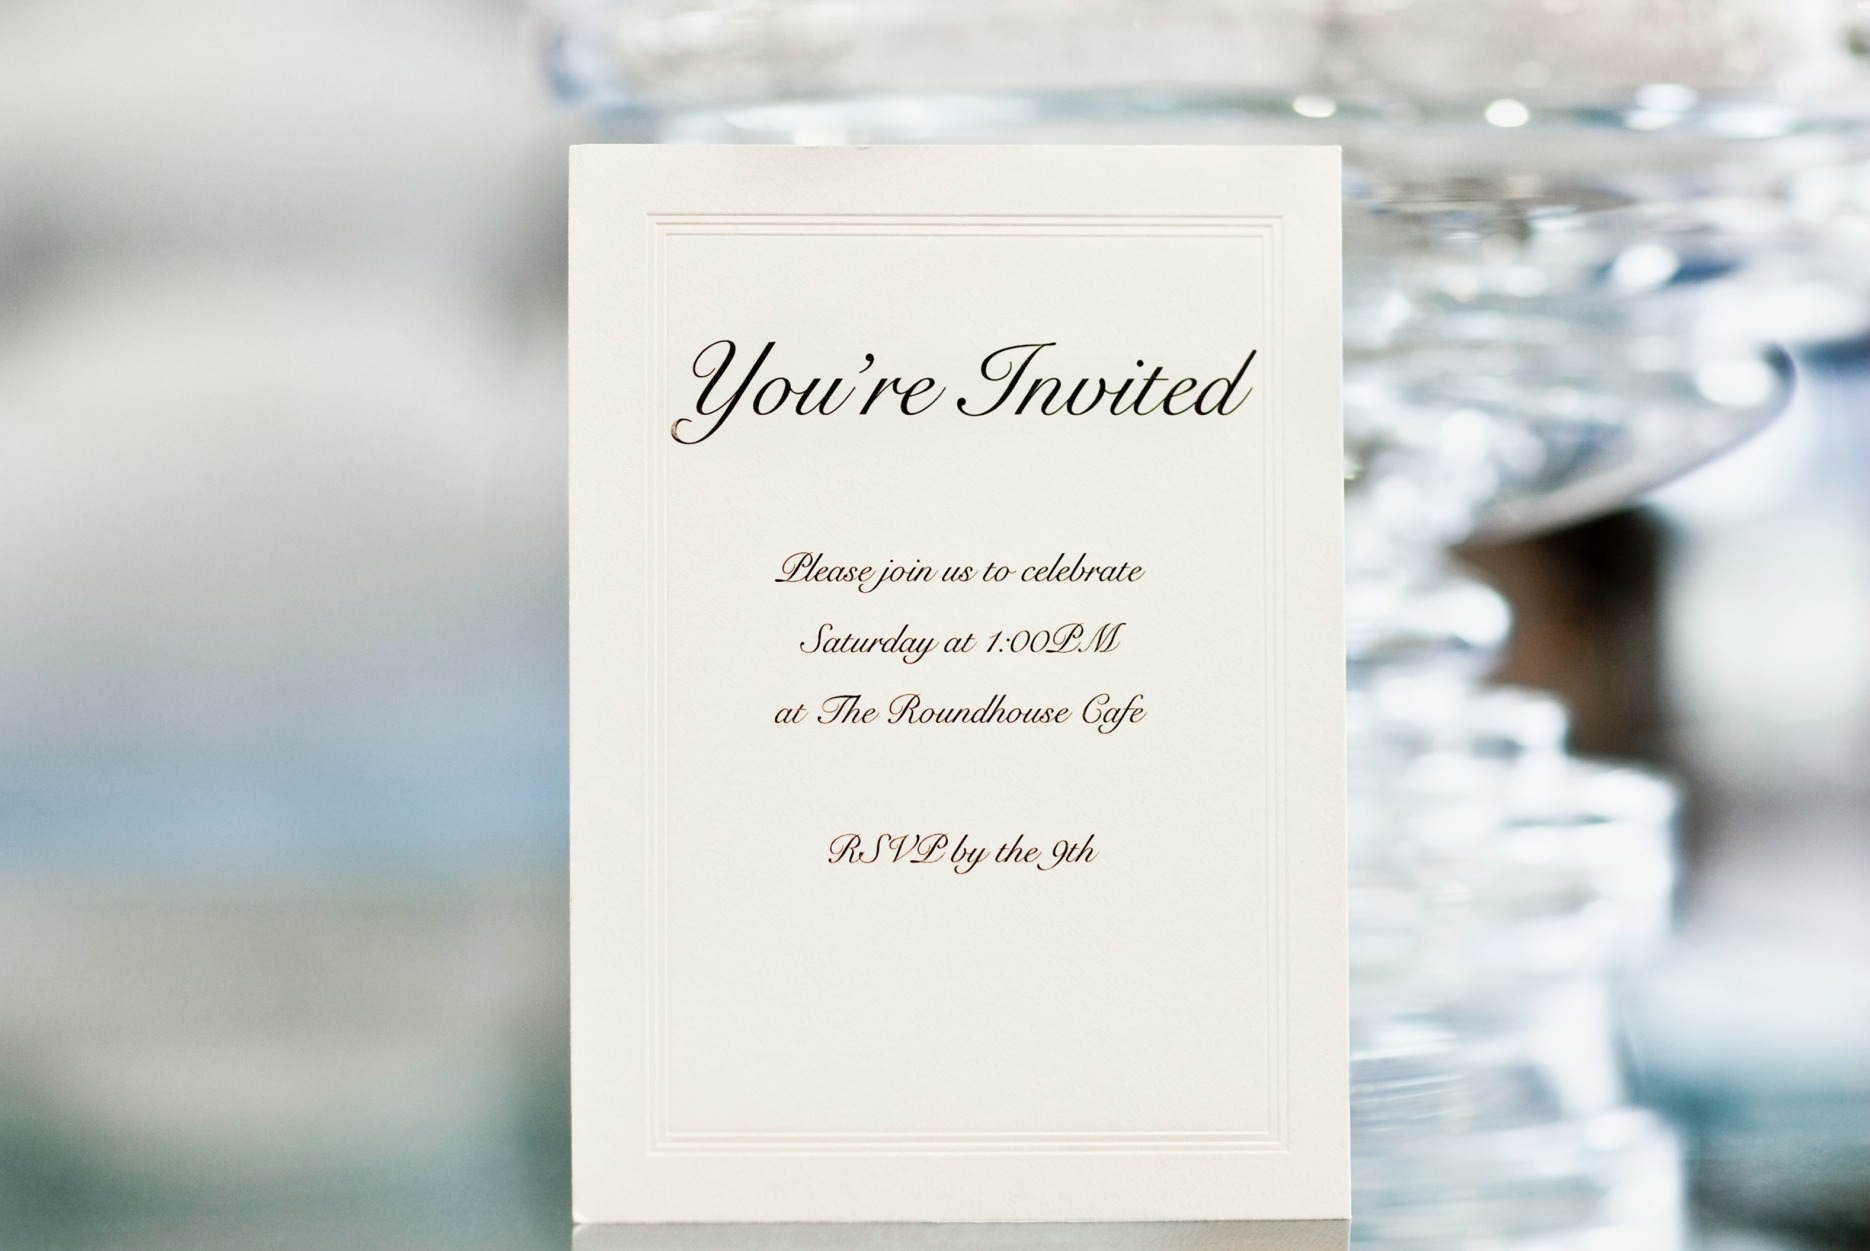 Wedding Invitation Wording Ideas With Poems: Wedding Invitation Wording